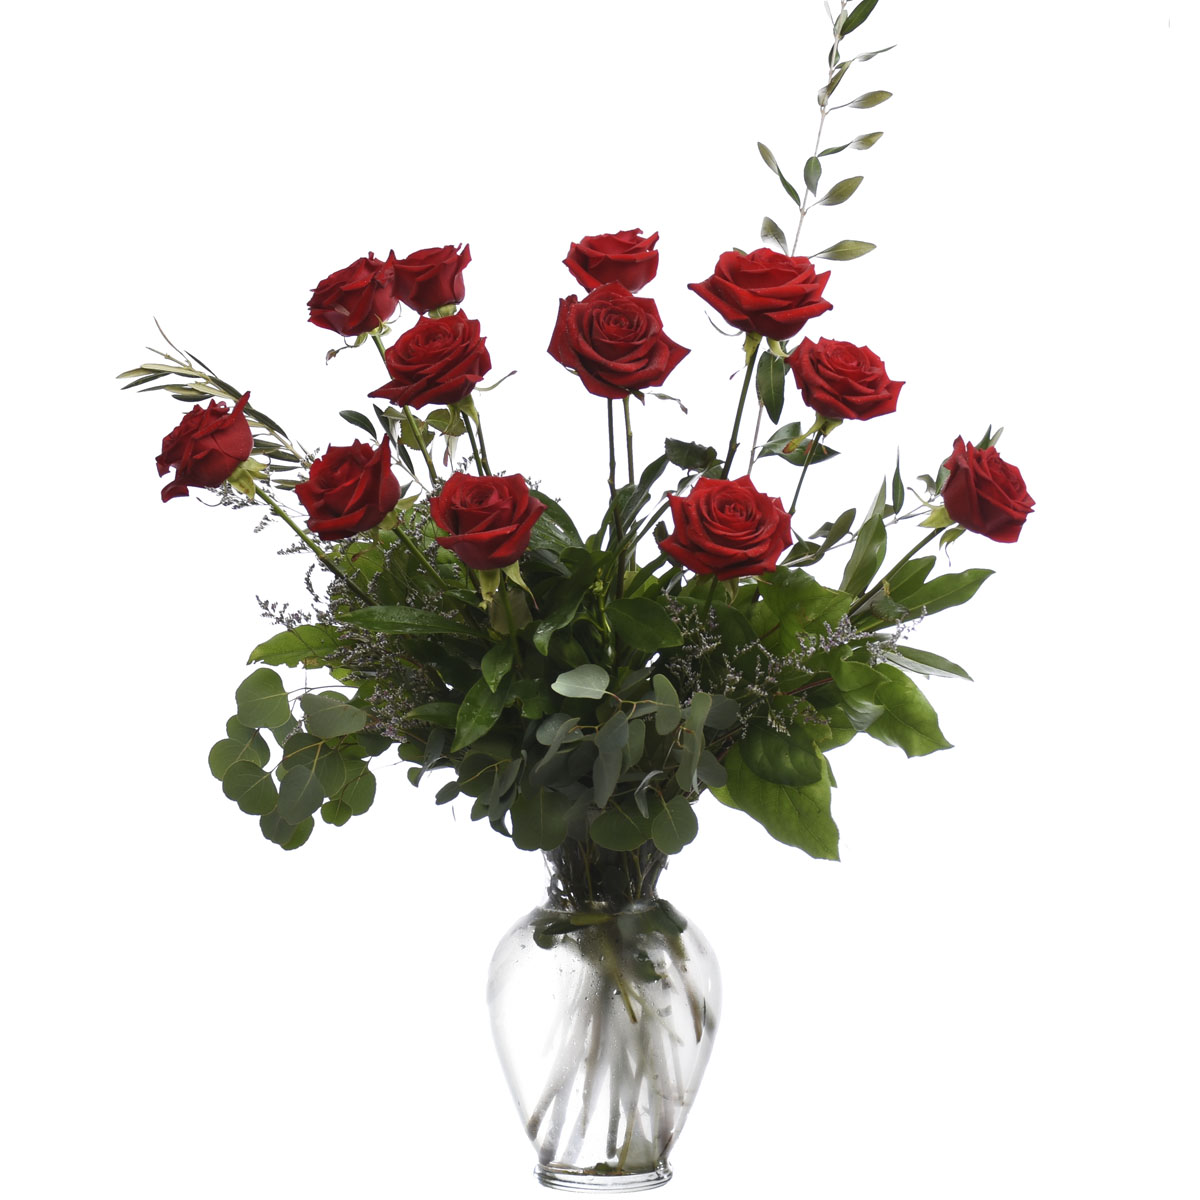 Vancouver Florist Delivery   Adele Rae Florist   Any occasion bouquet